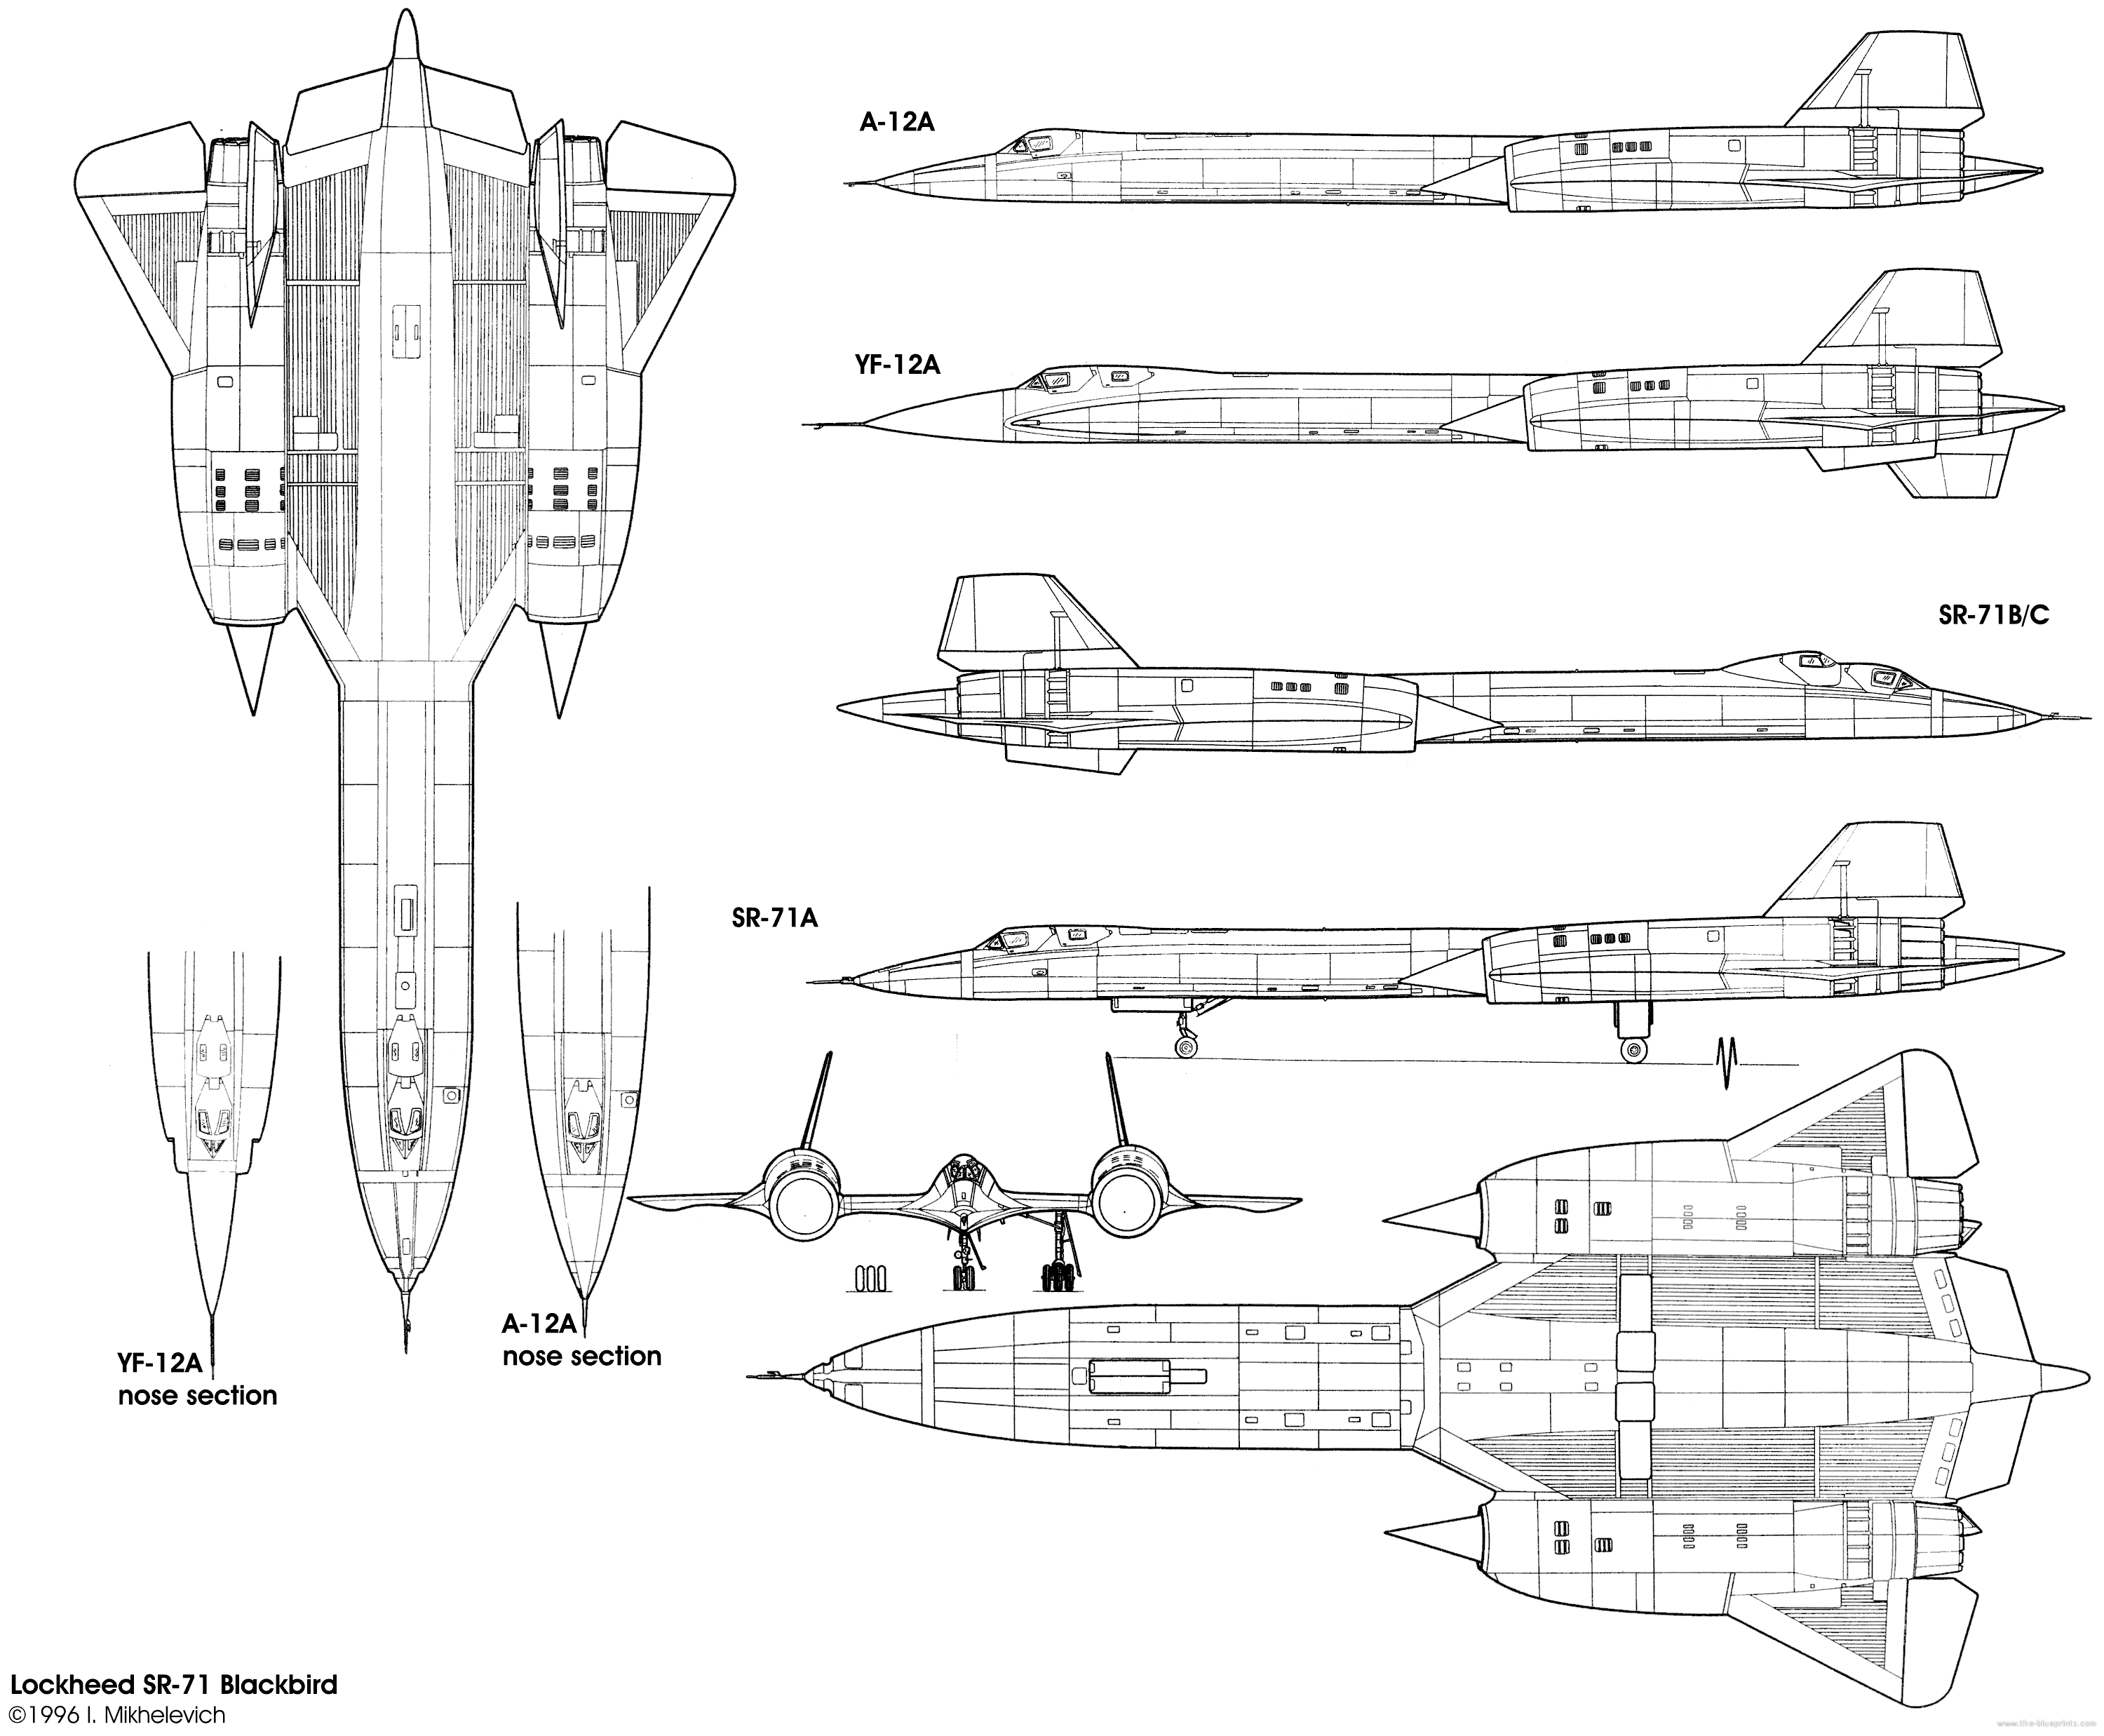 The-Blueprints.com - Blueprints > Modern airplanes ...